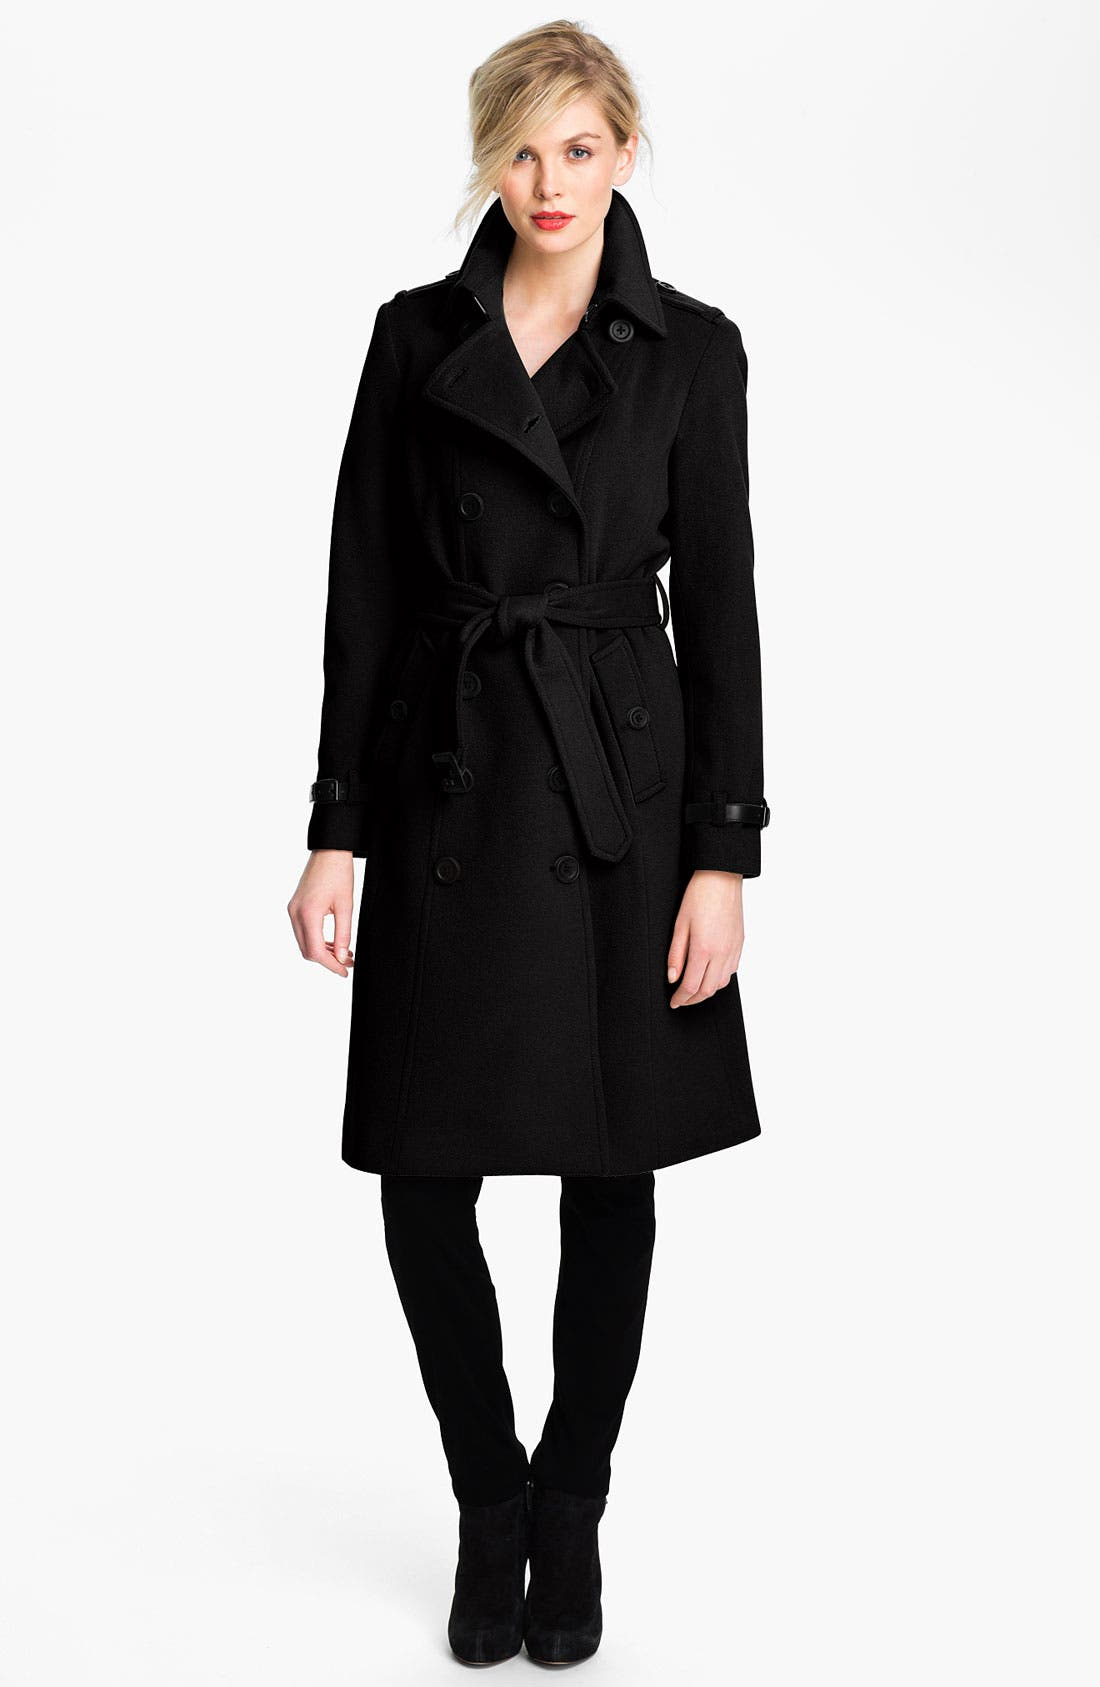 Alternate Image 1 Selected - London Fog Double Breasted Wool Blend Trench Coat (Online Exclusive)